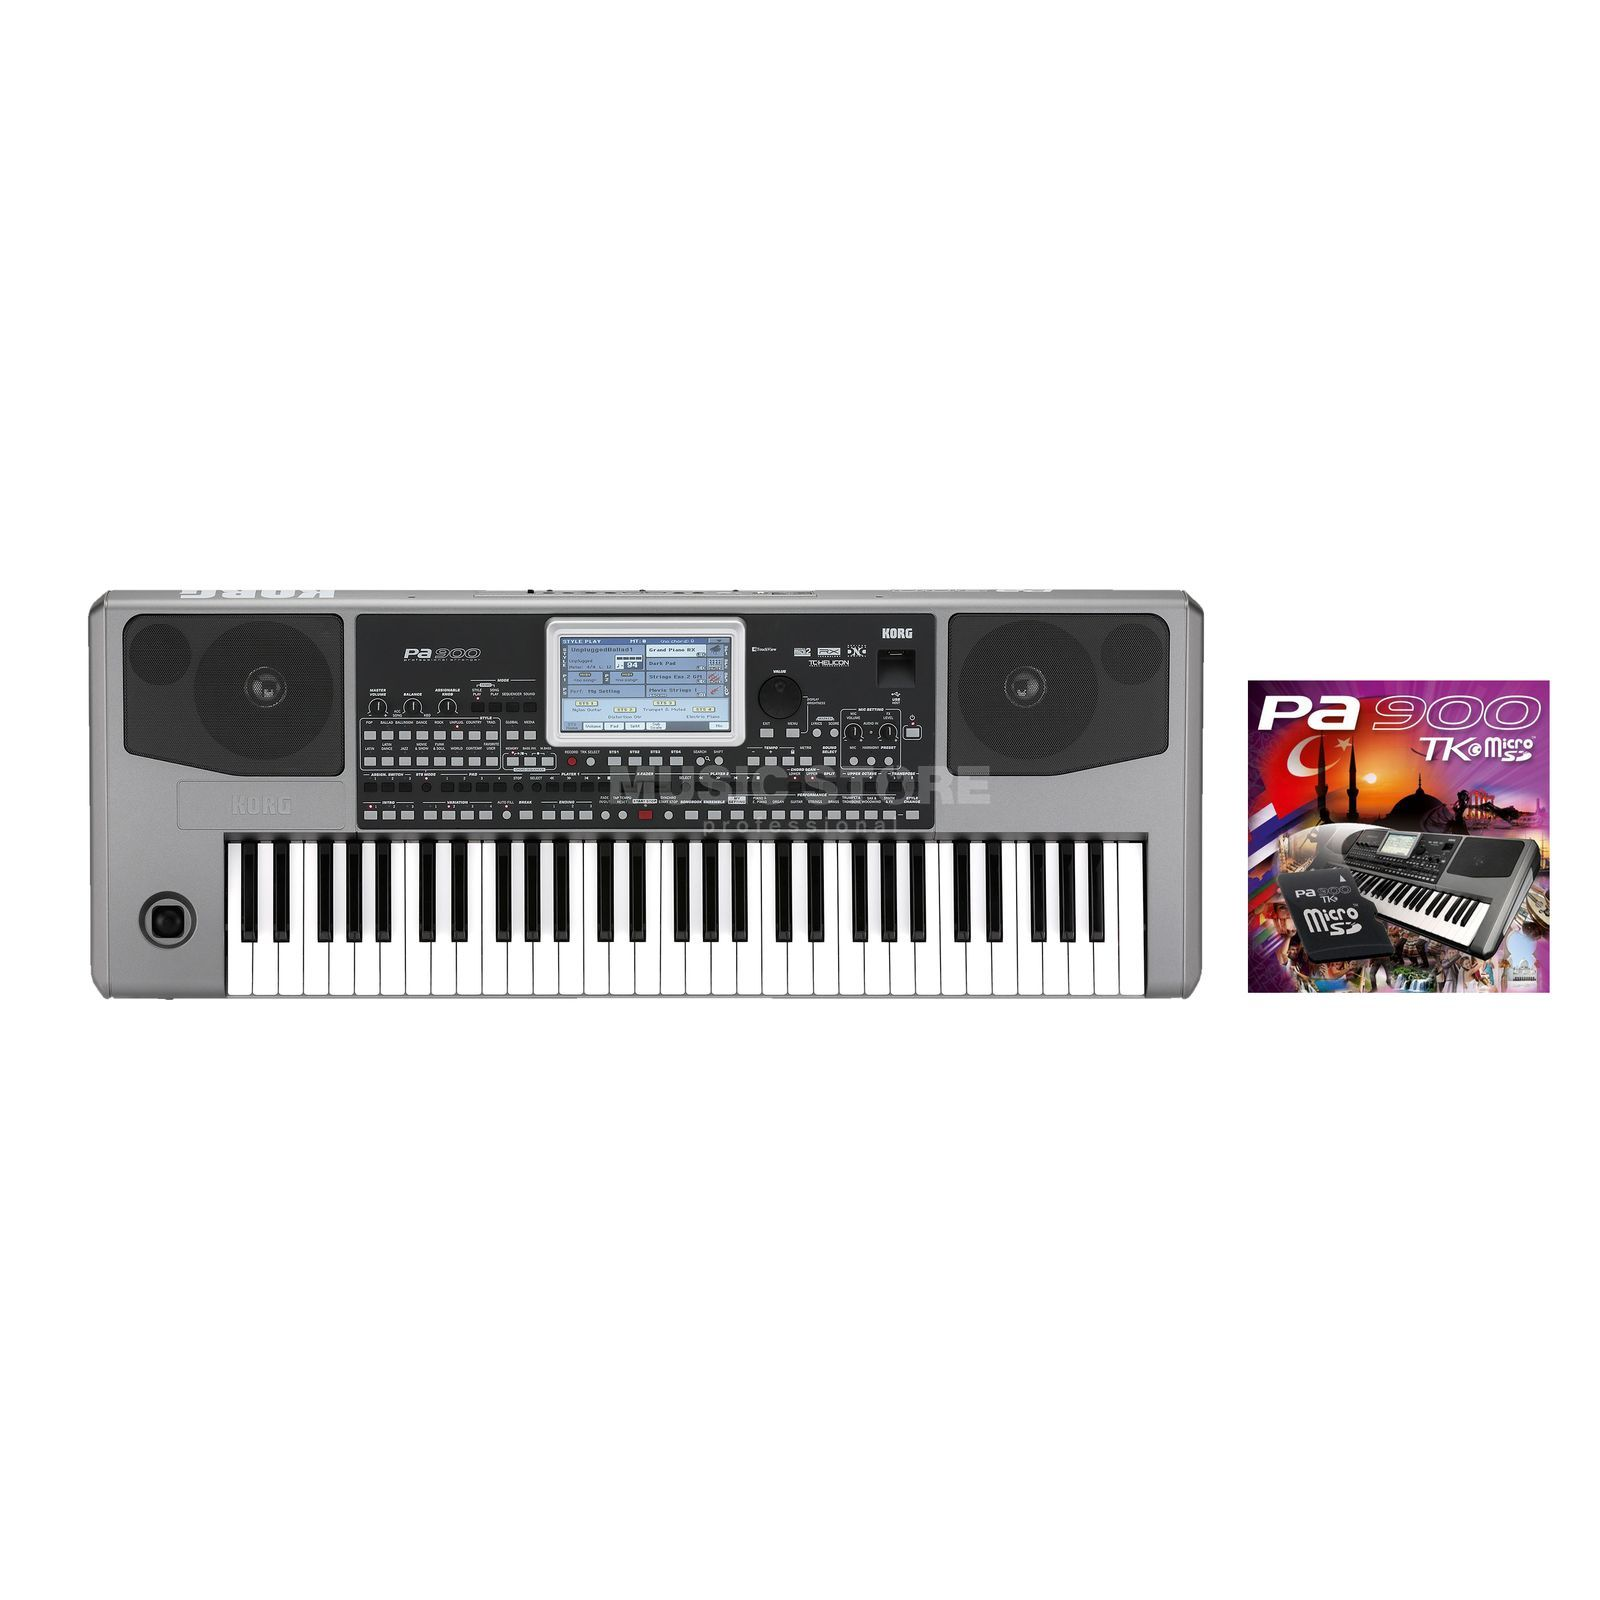 SET KORG Pa 900 Entertainer Set inkl. türkische Software Produktbild